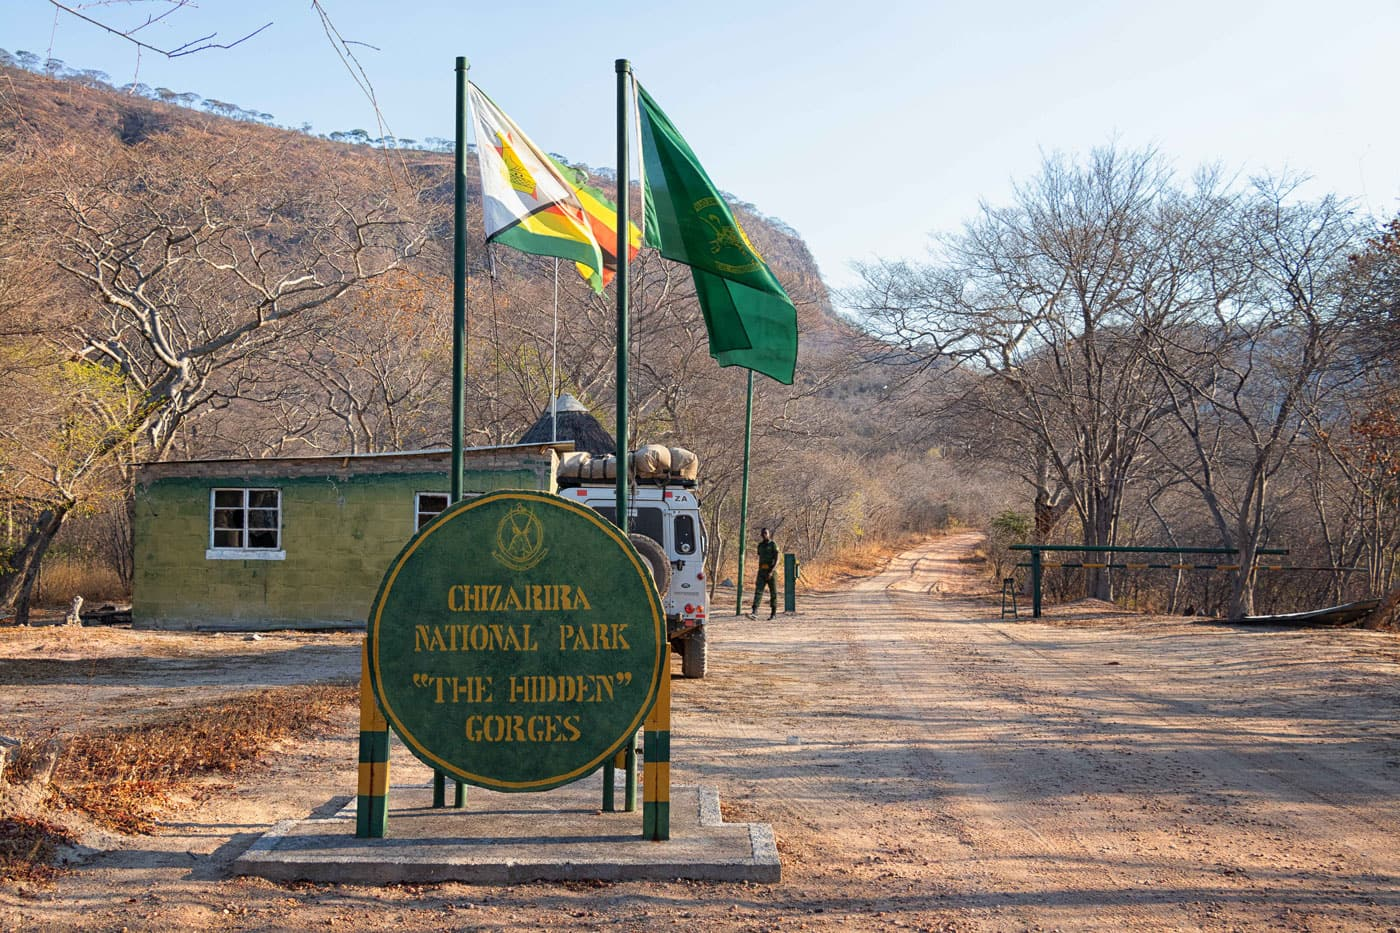 Johann Groenewald - Chizarira National Park - Entrance Gate